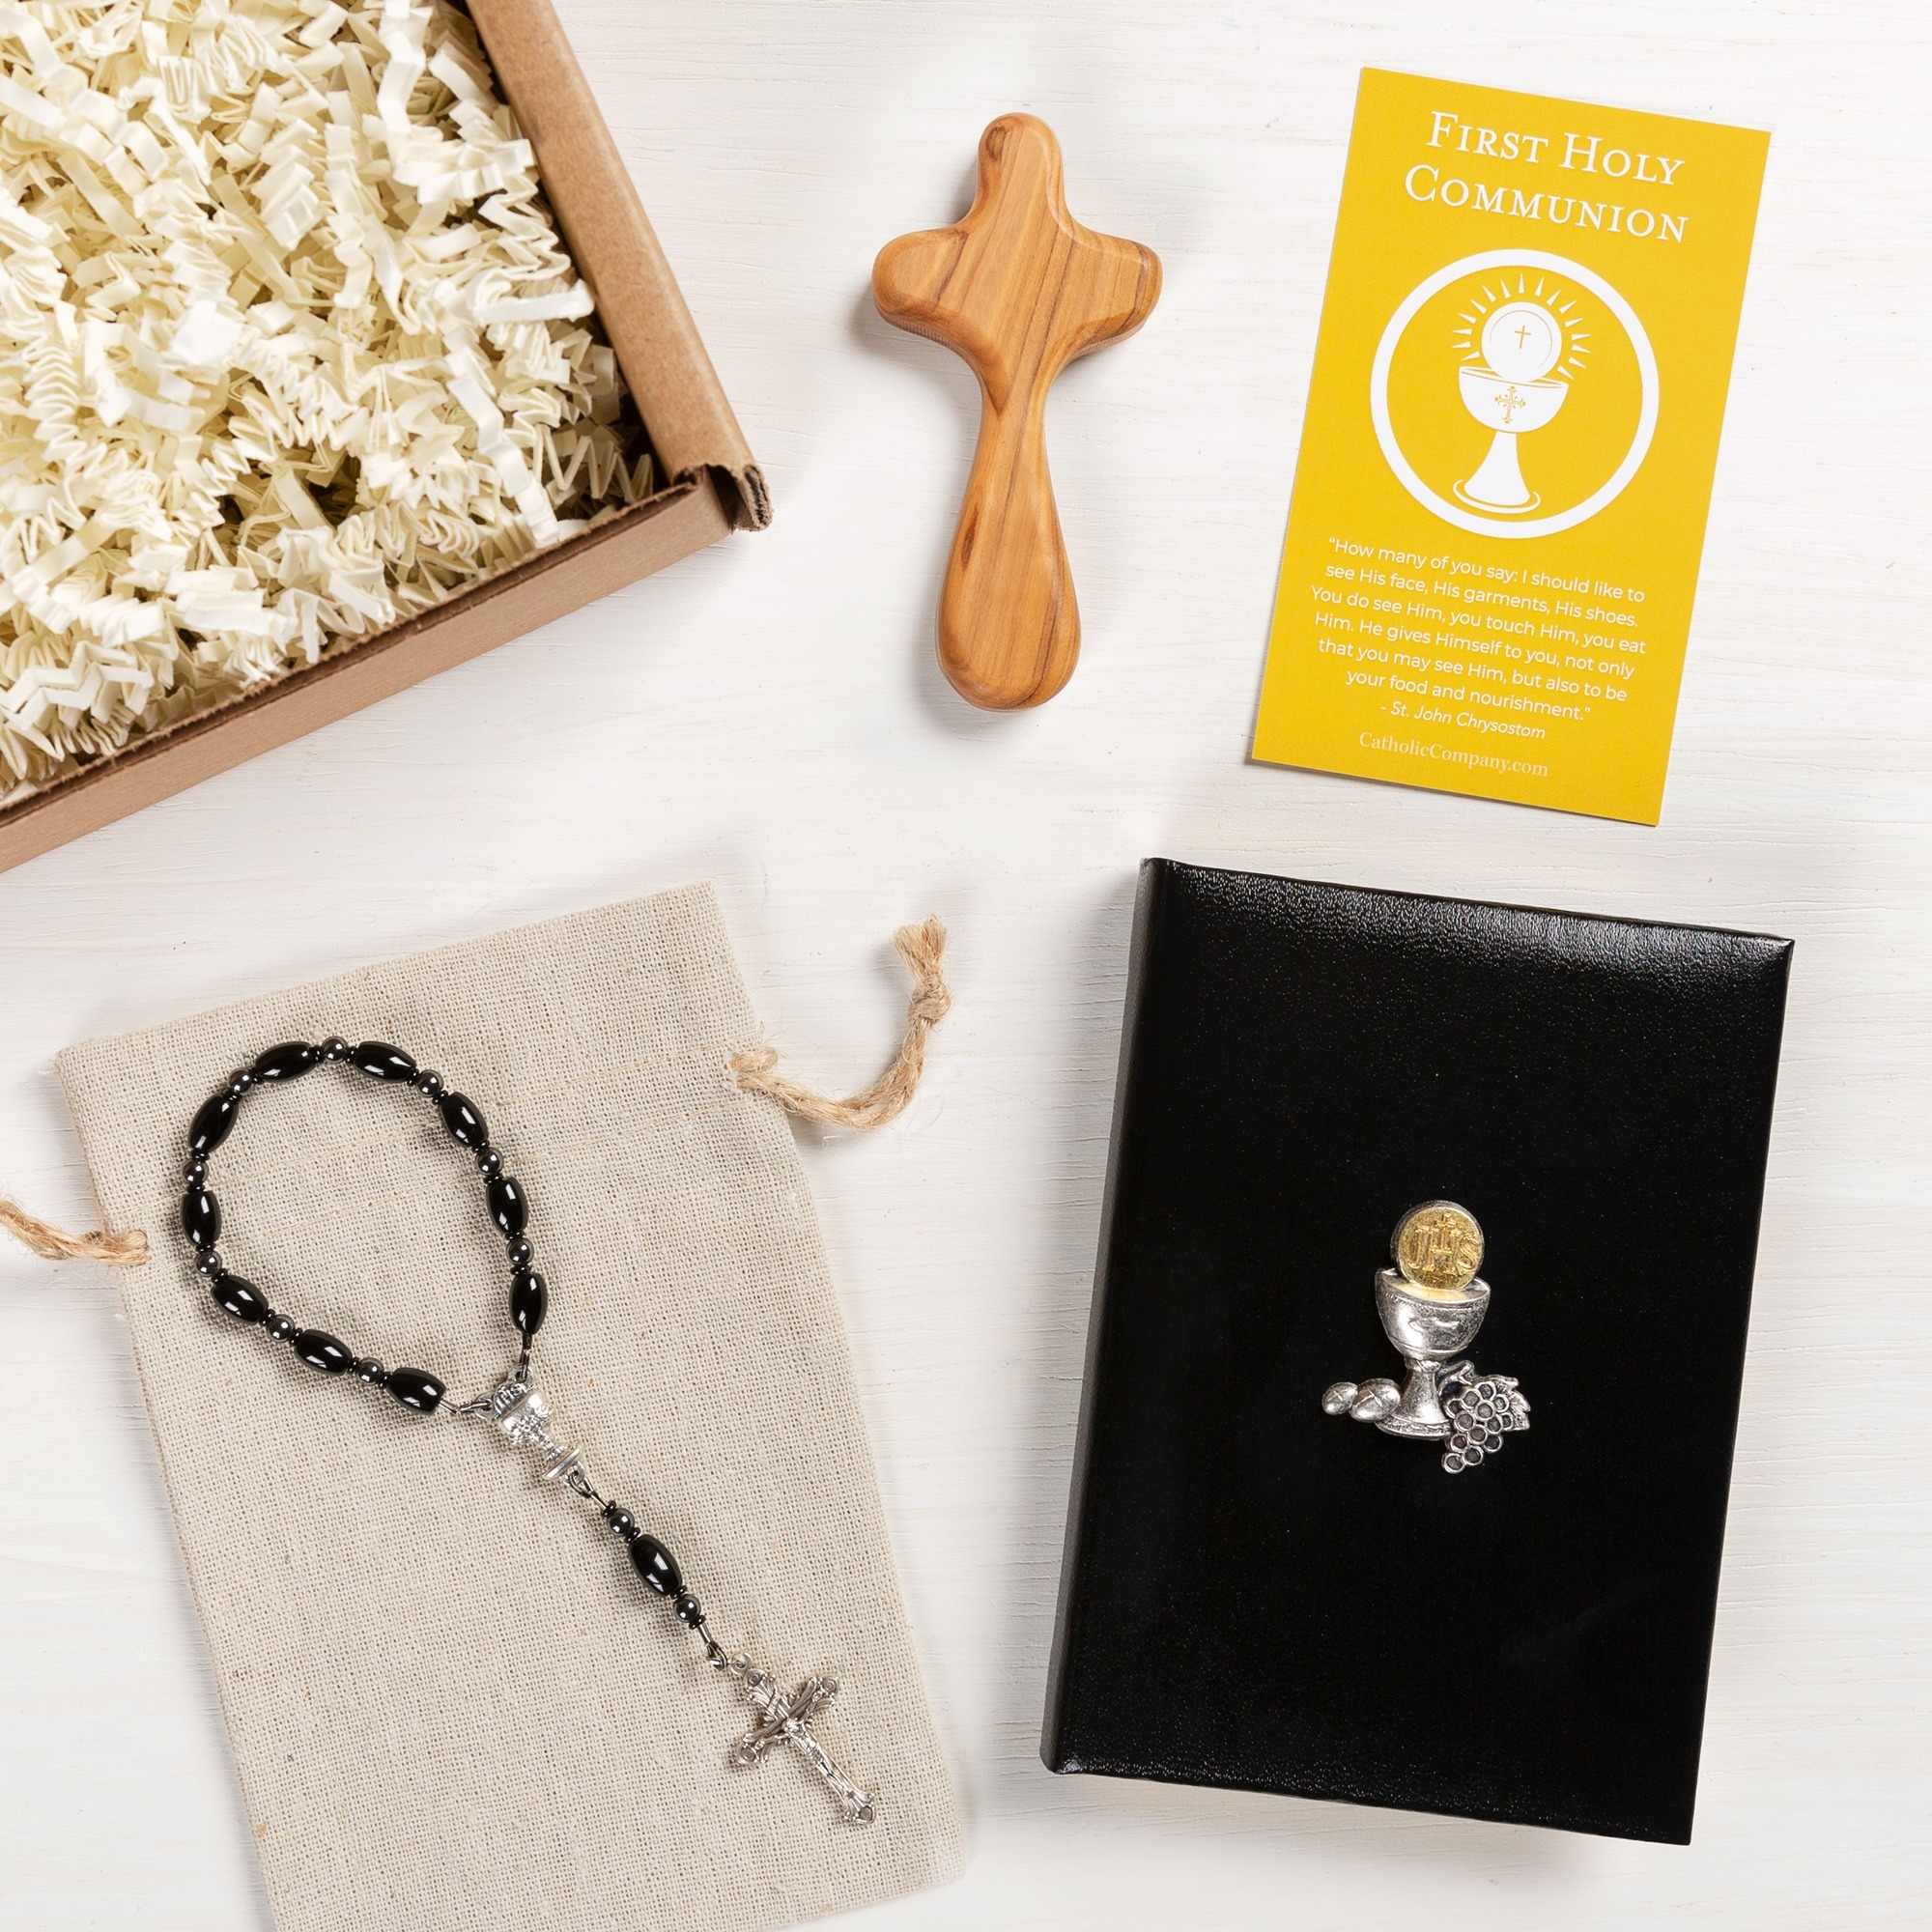 First Communion Gift Box Set - Boys